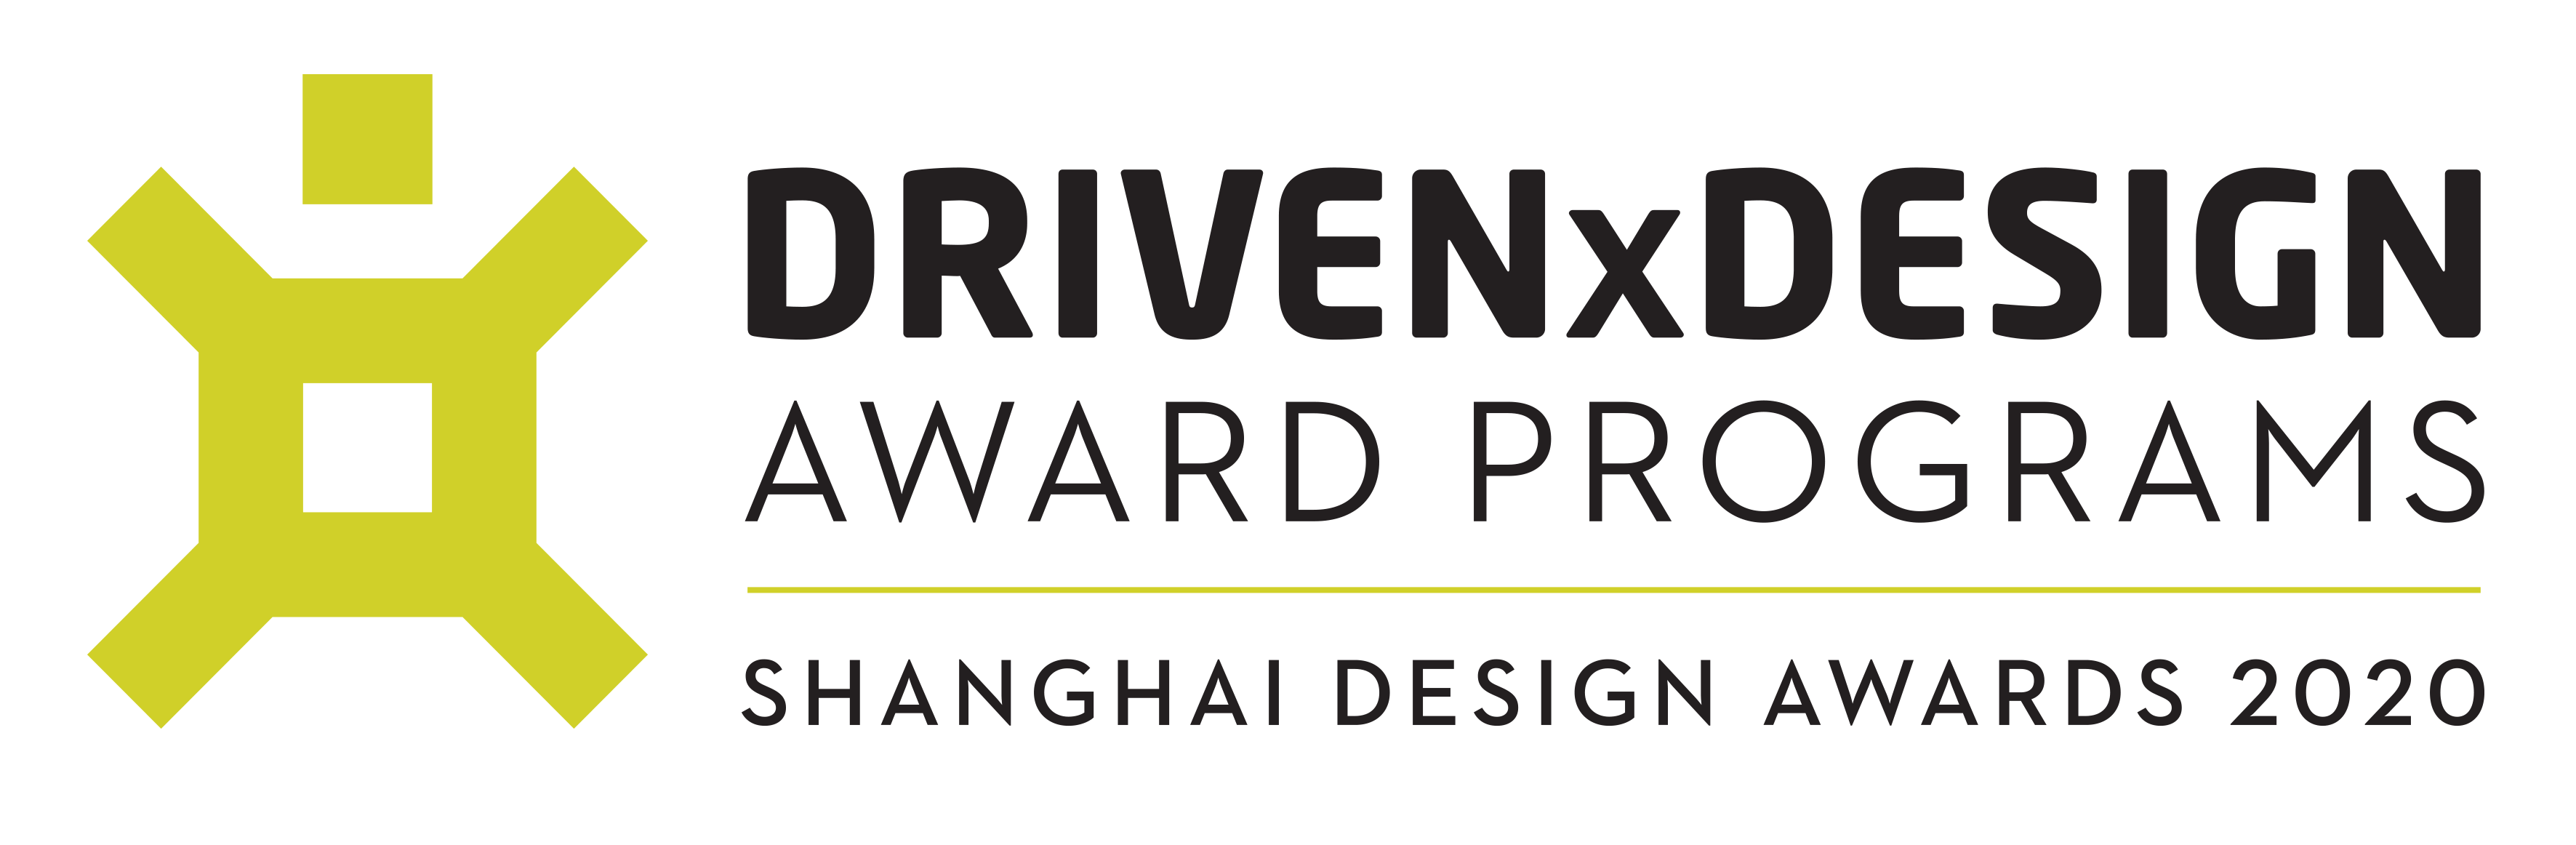 Shanghai Design Awards